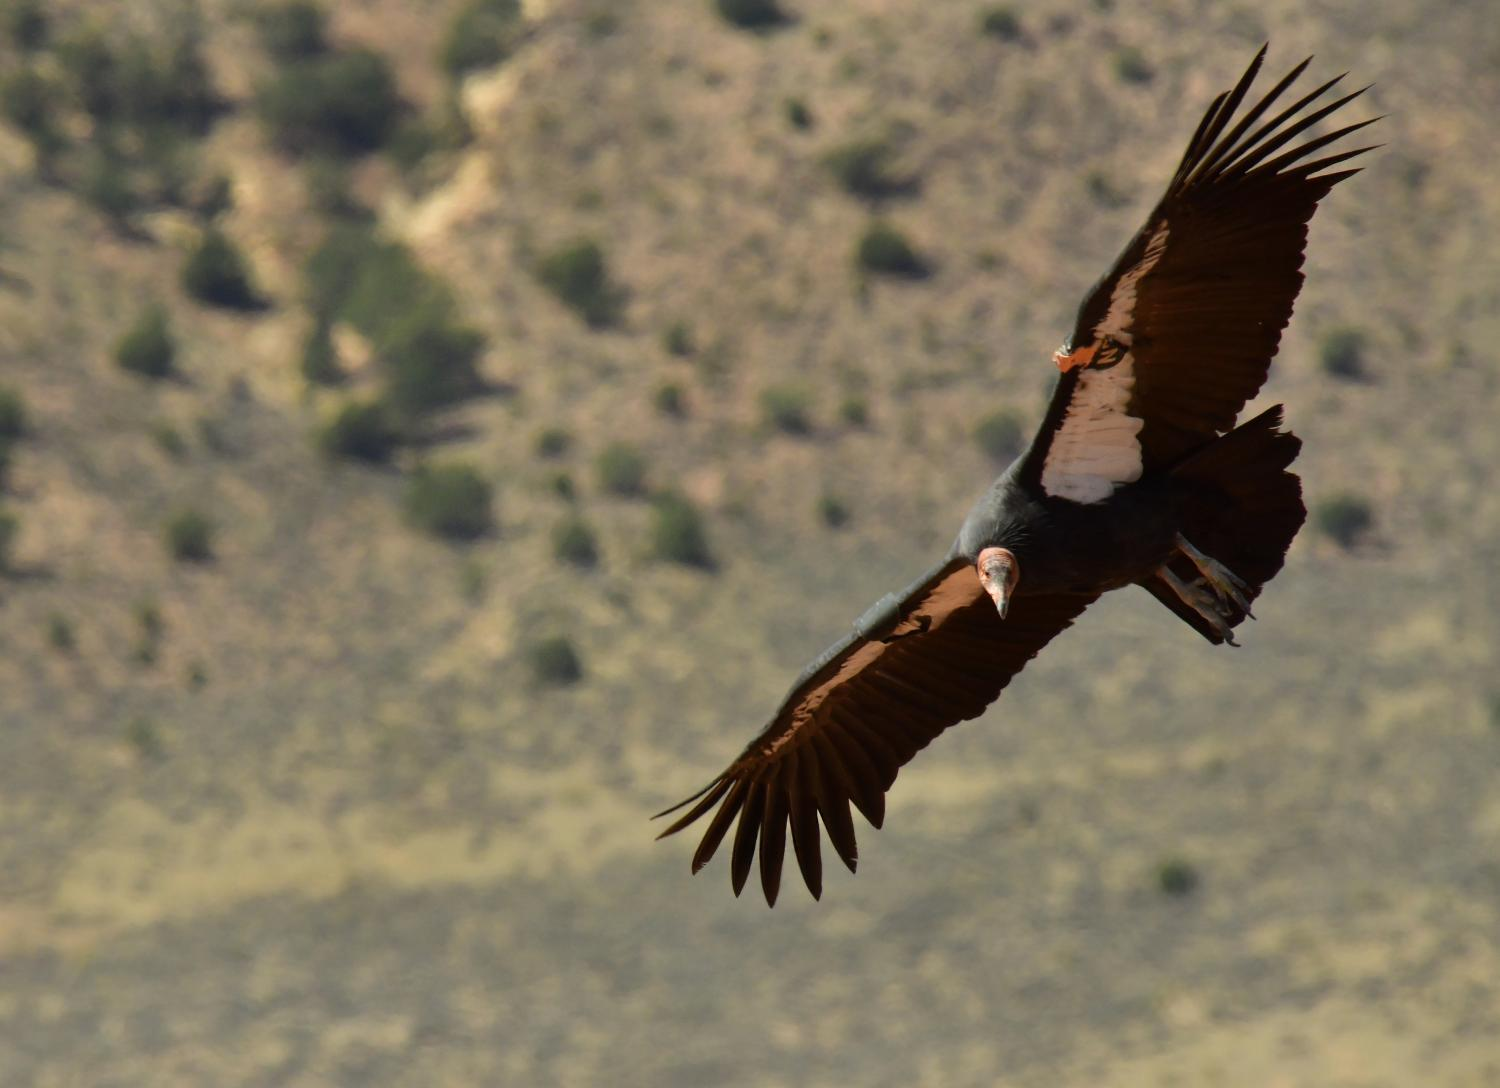 A california condor flies after being released in Northern Arizona